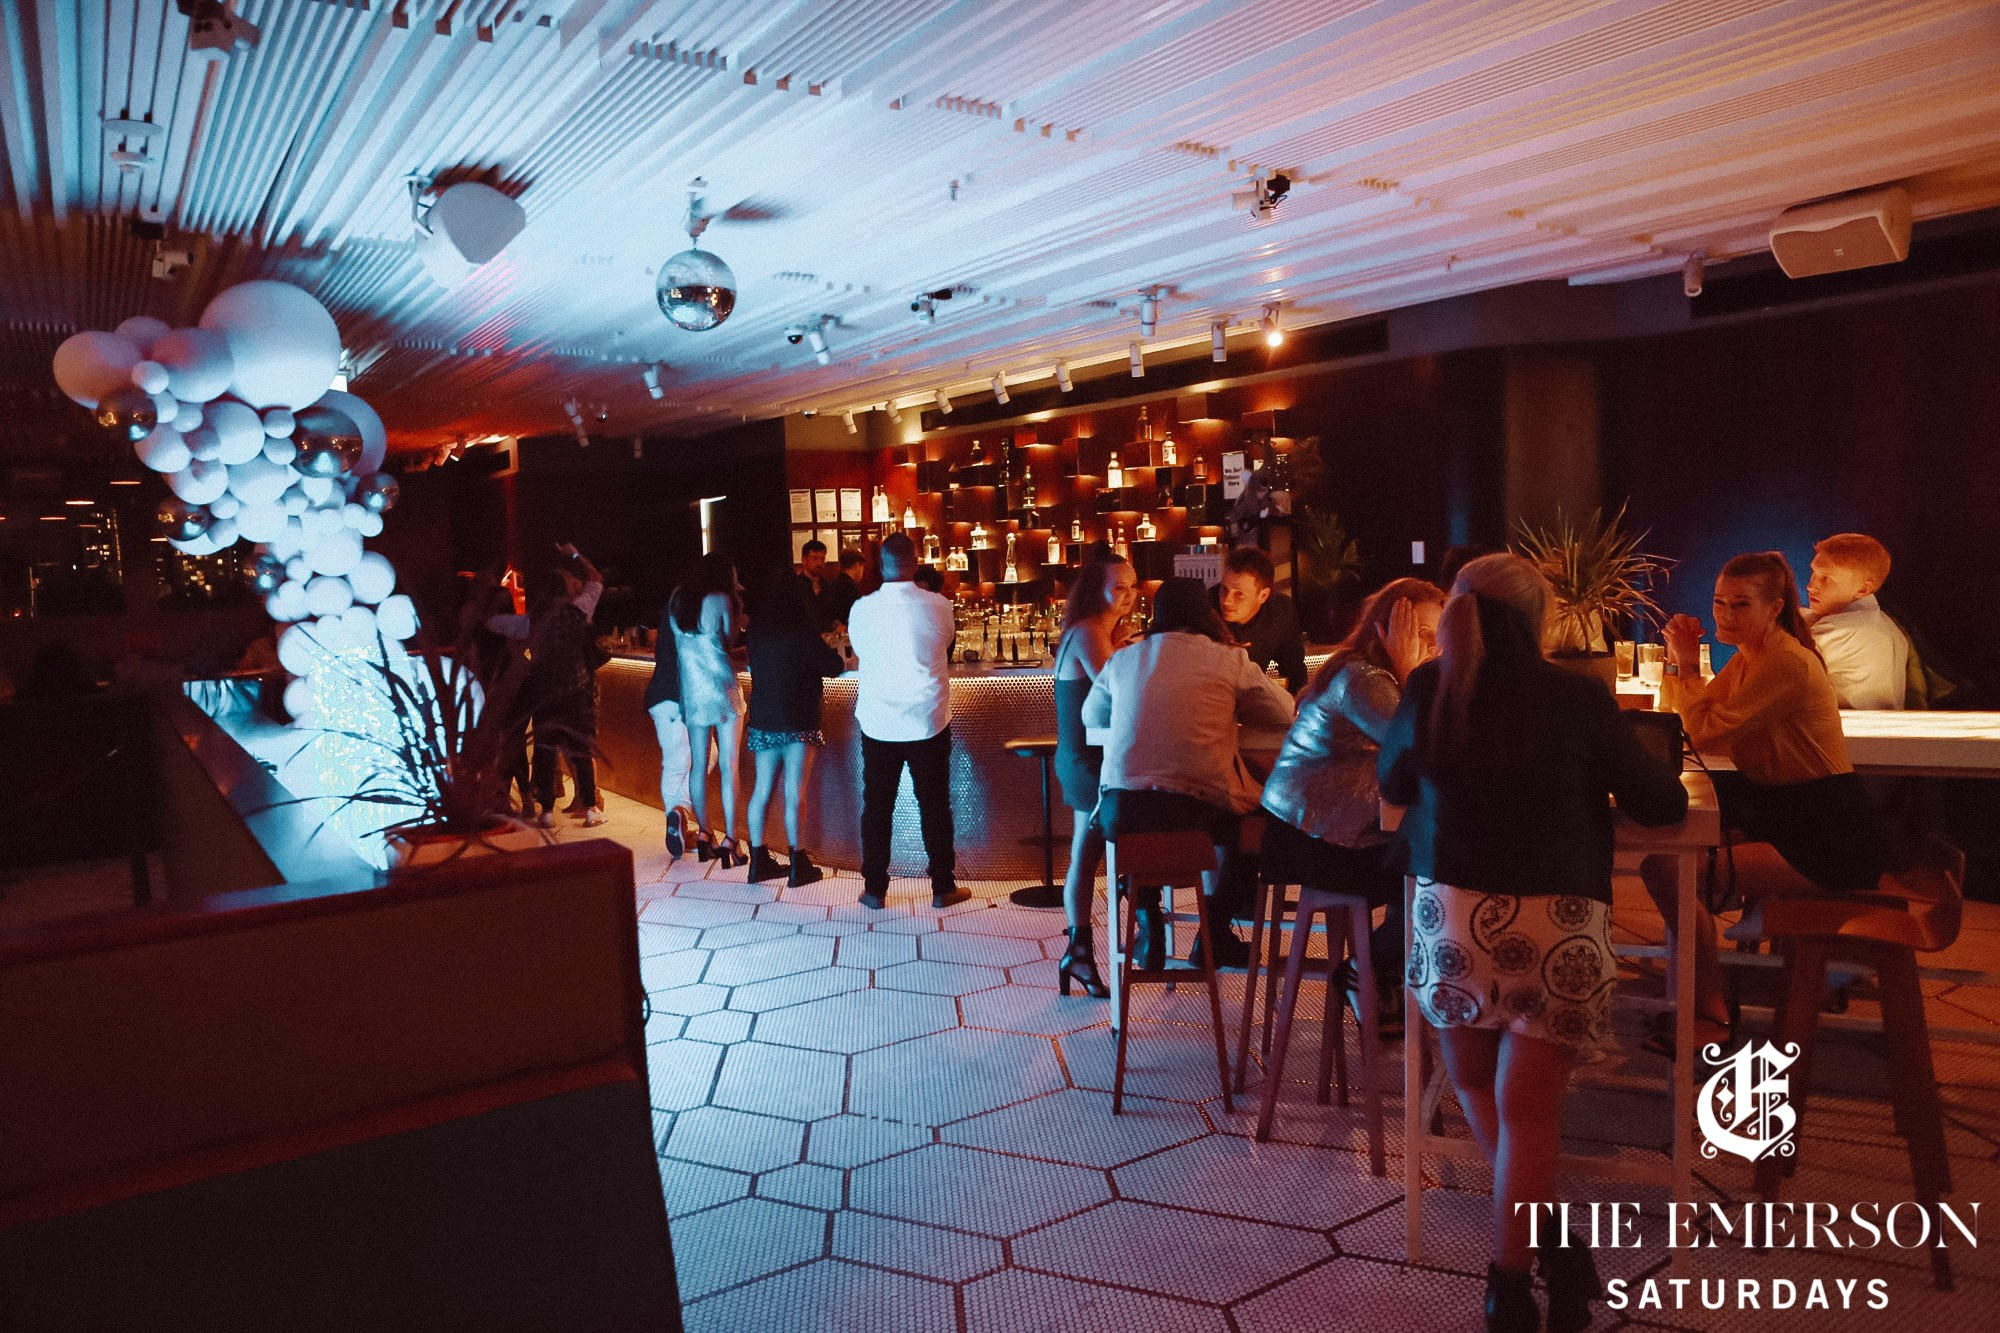 The Emerson rooftop bar and club